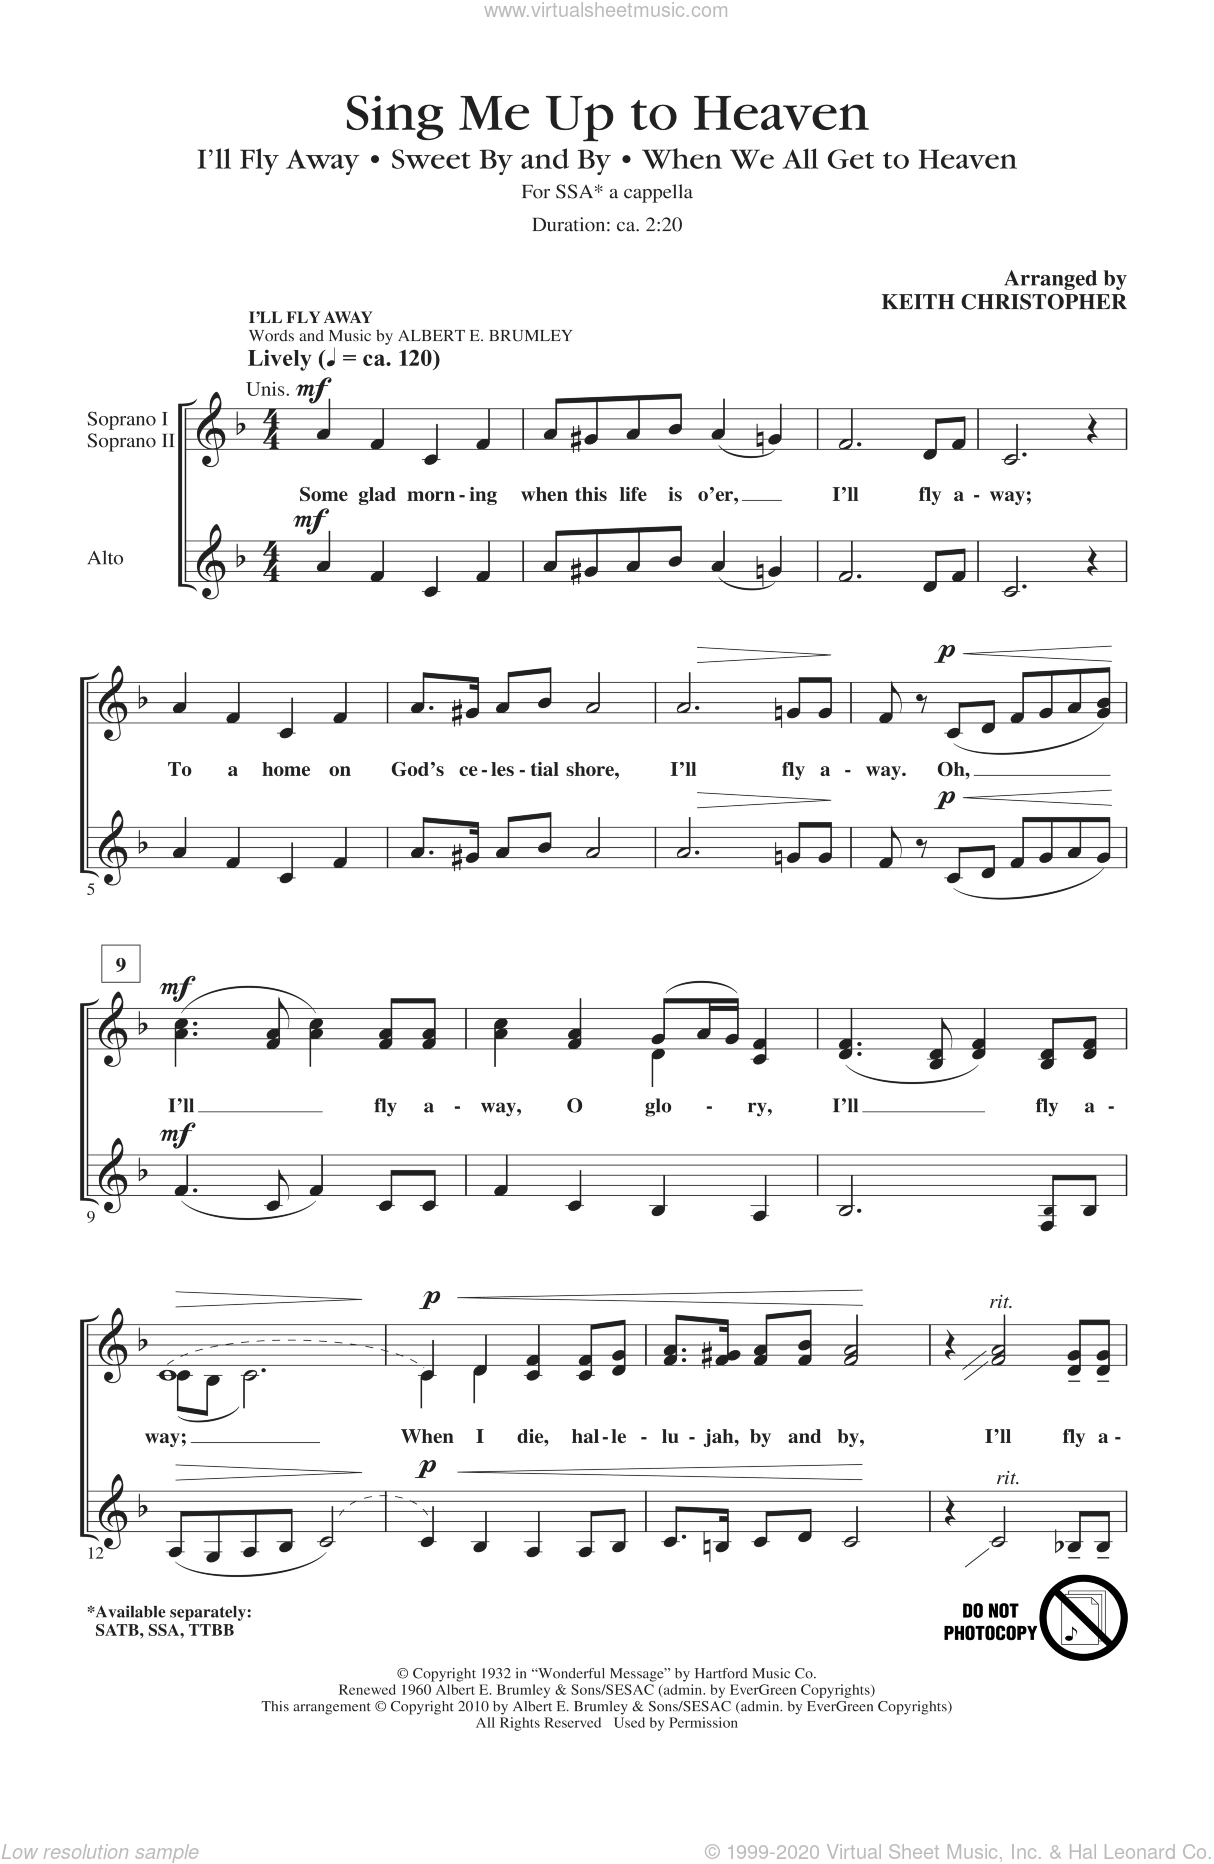 Sing Me Up To Heaven (Medley) sheet music for choir and piano (SSA) by Keith Christopher